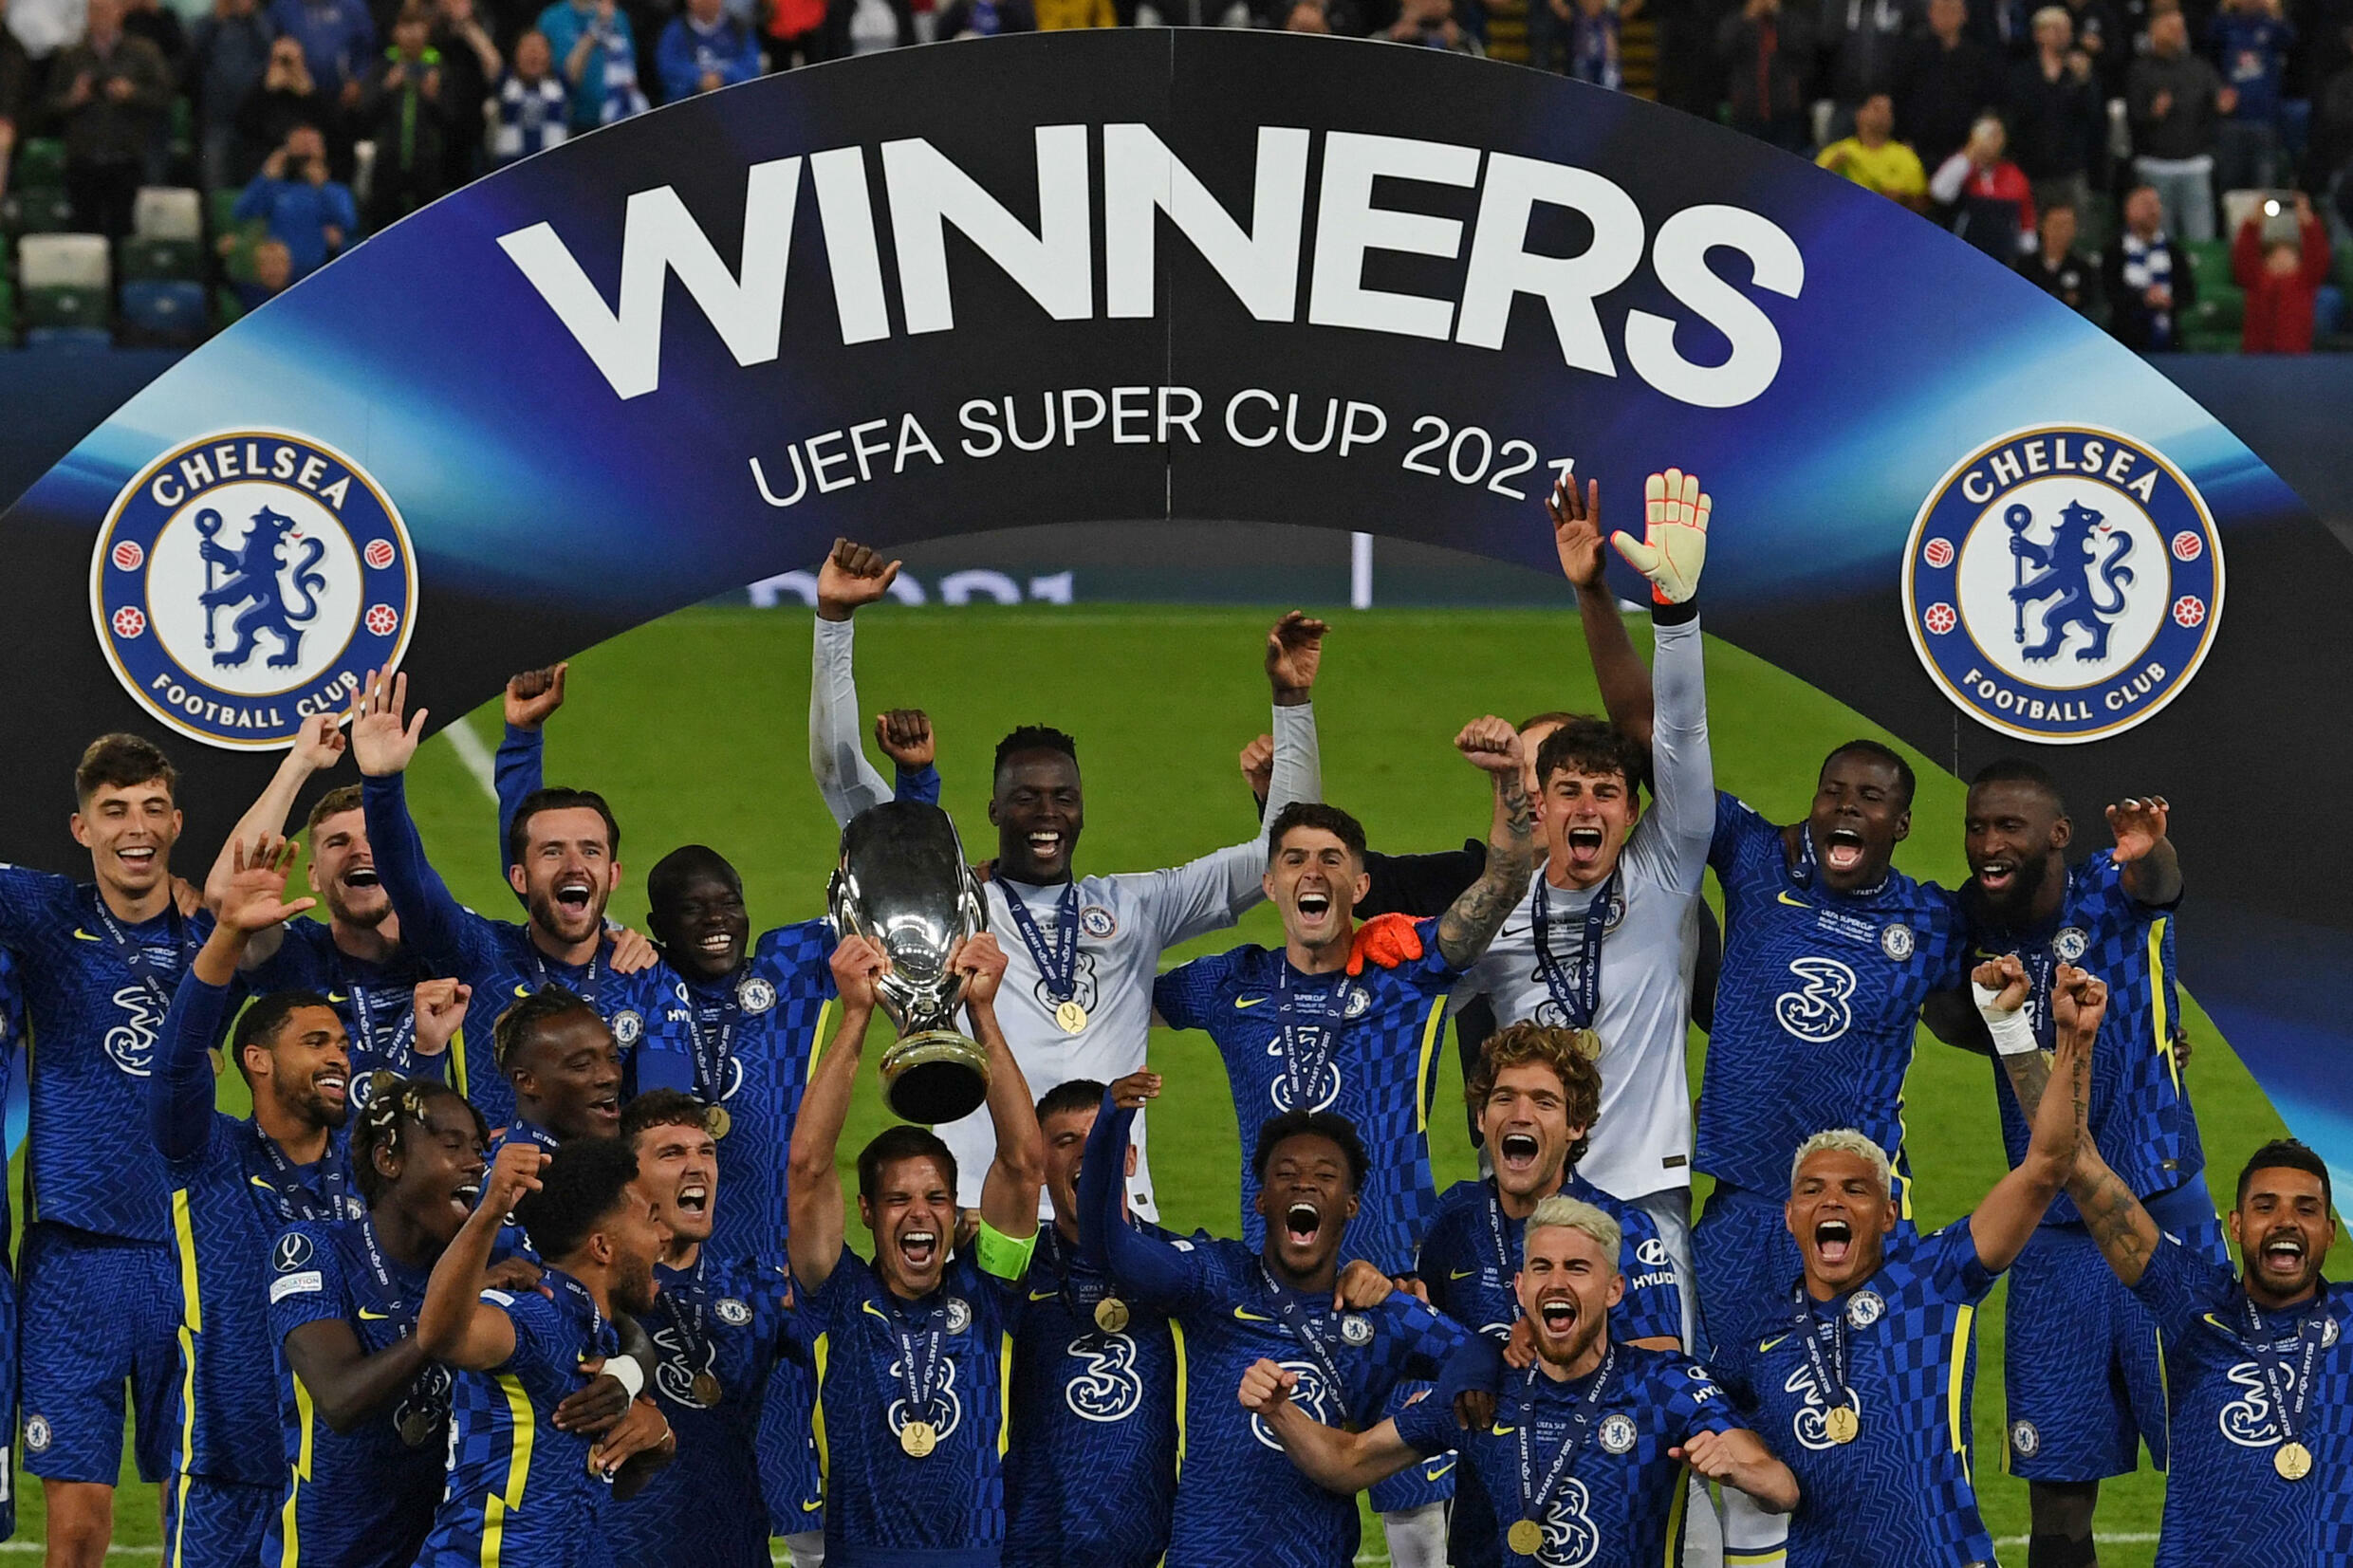 Chelsea supercoupe d'europe